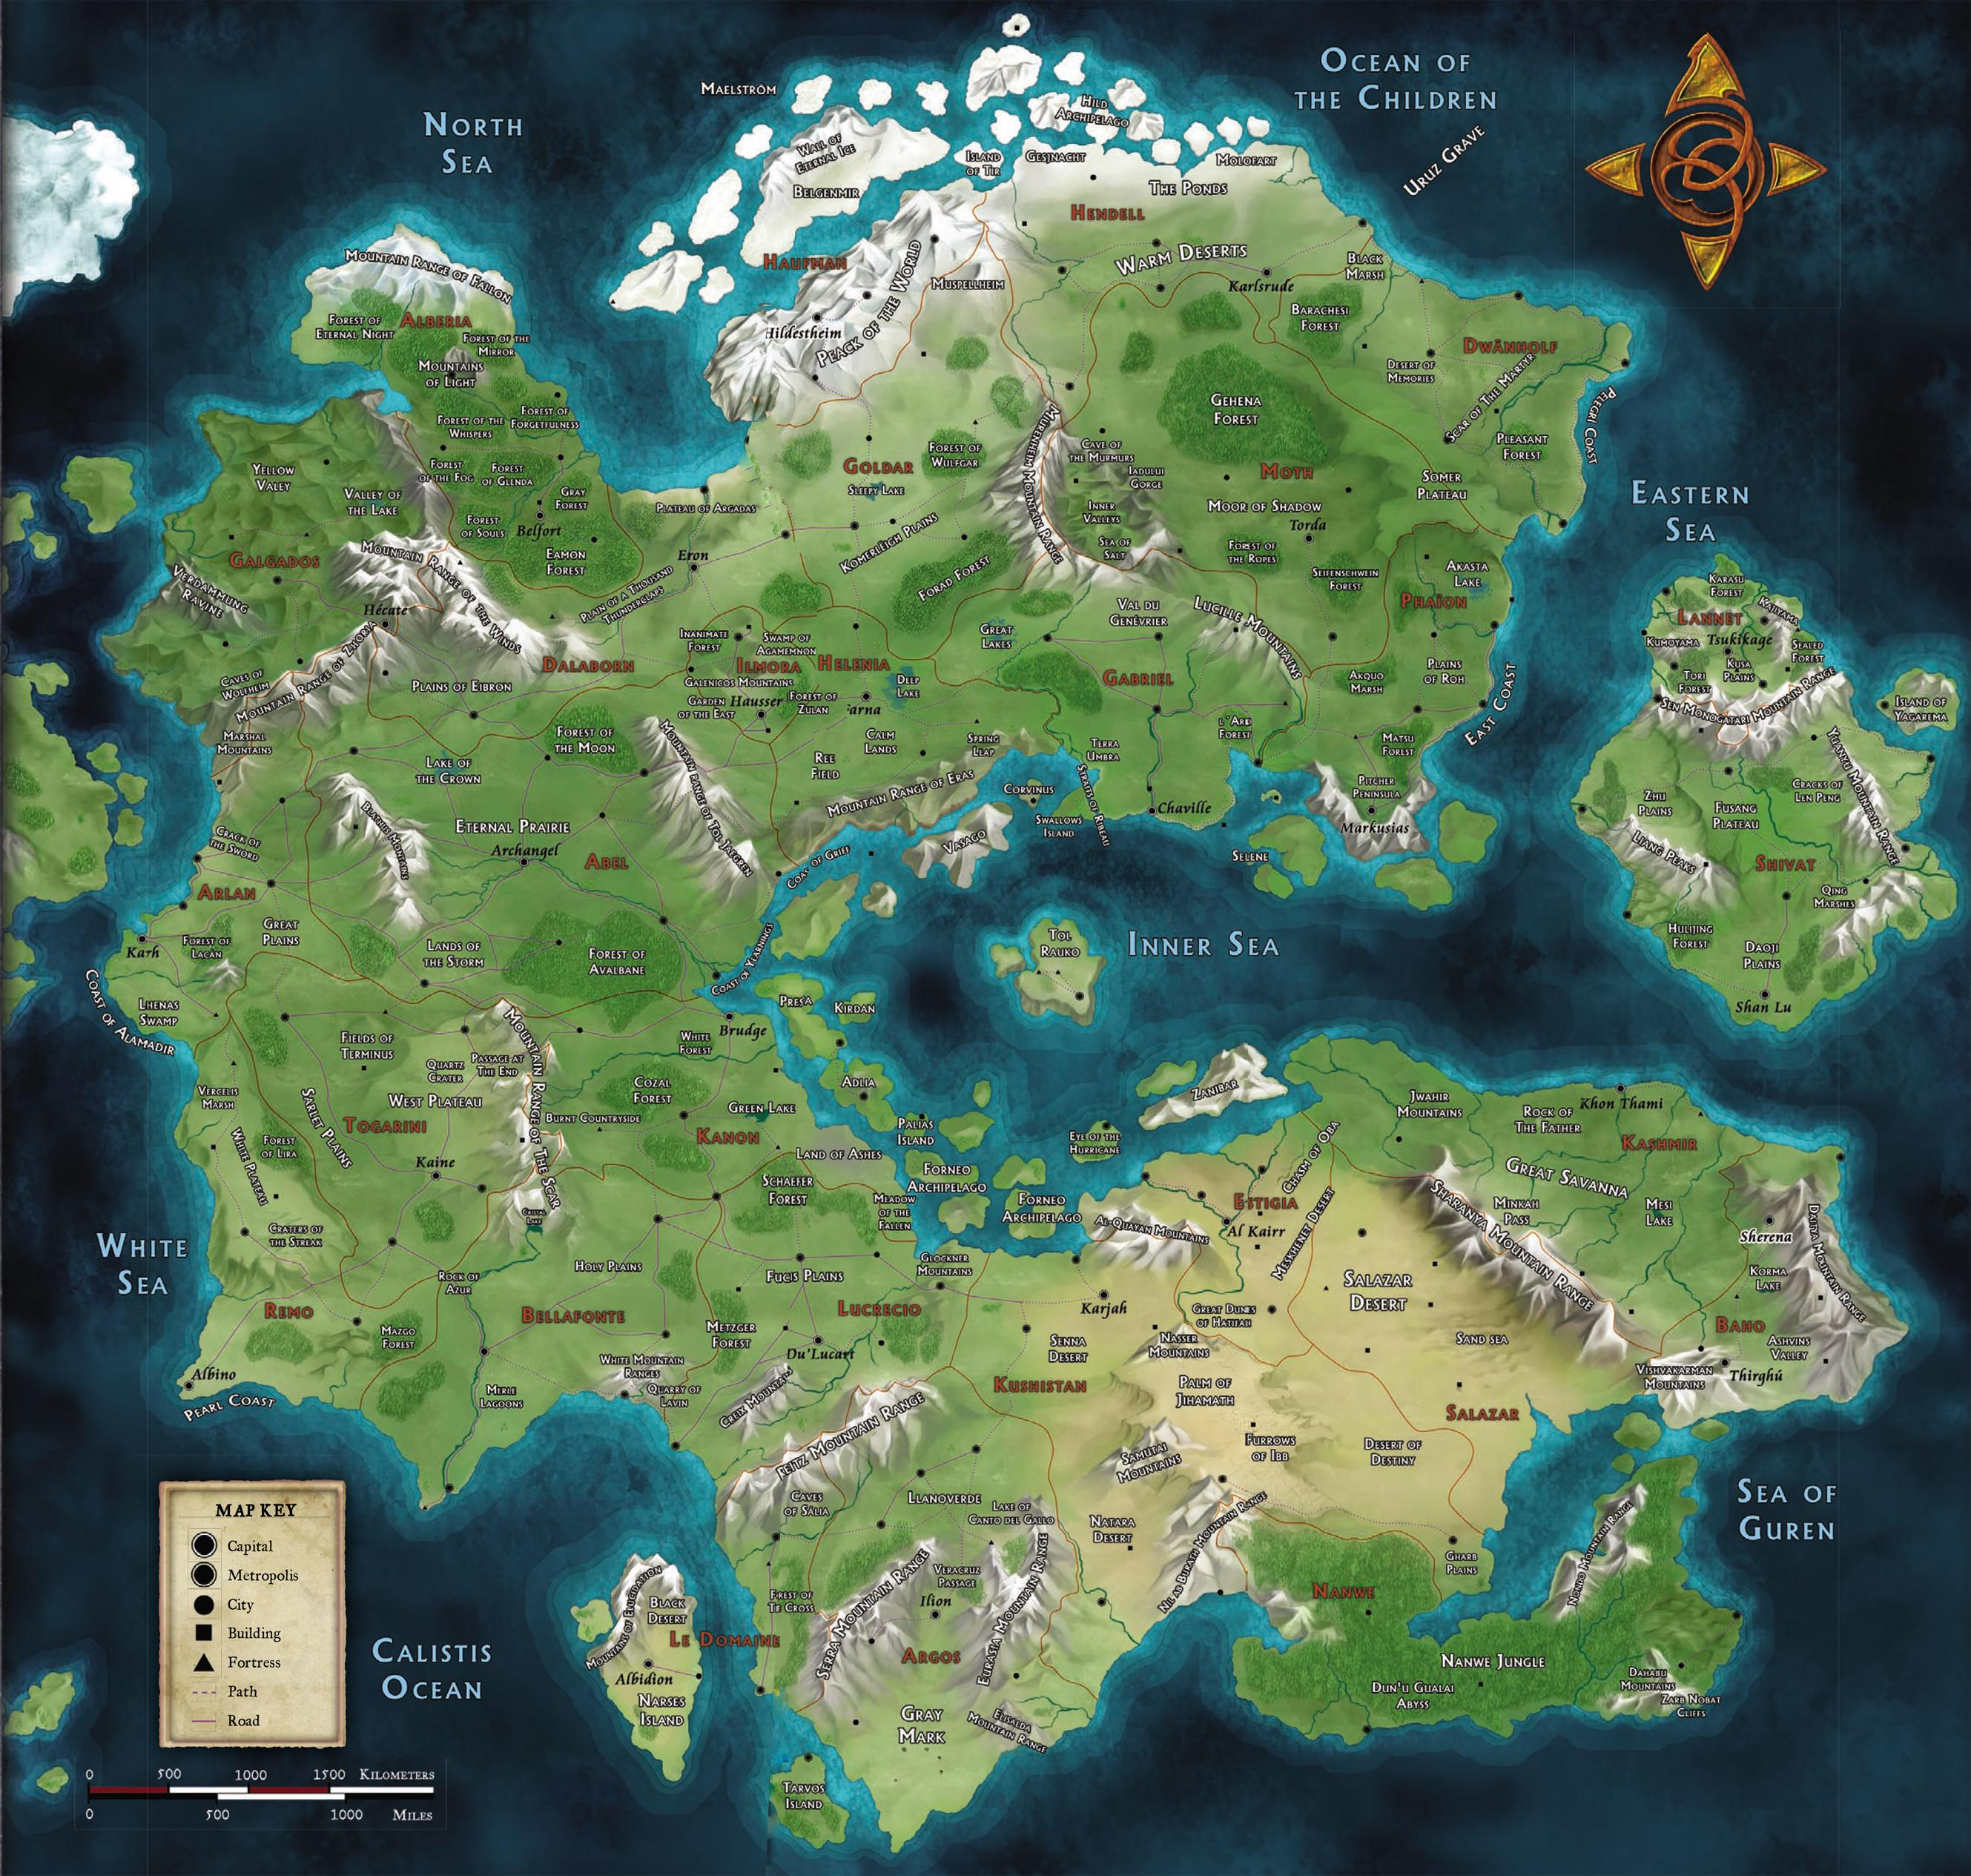 Map of the world anima rpg beyond fantasy wiki fandom this is simply the map of the world from the gaia book ive taken the map and made it into a clear document for the sake of looking at the world easily gumiabroncs Images